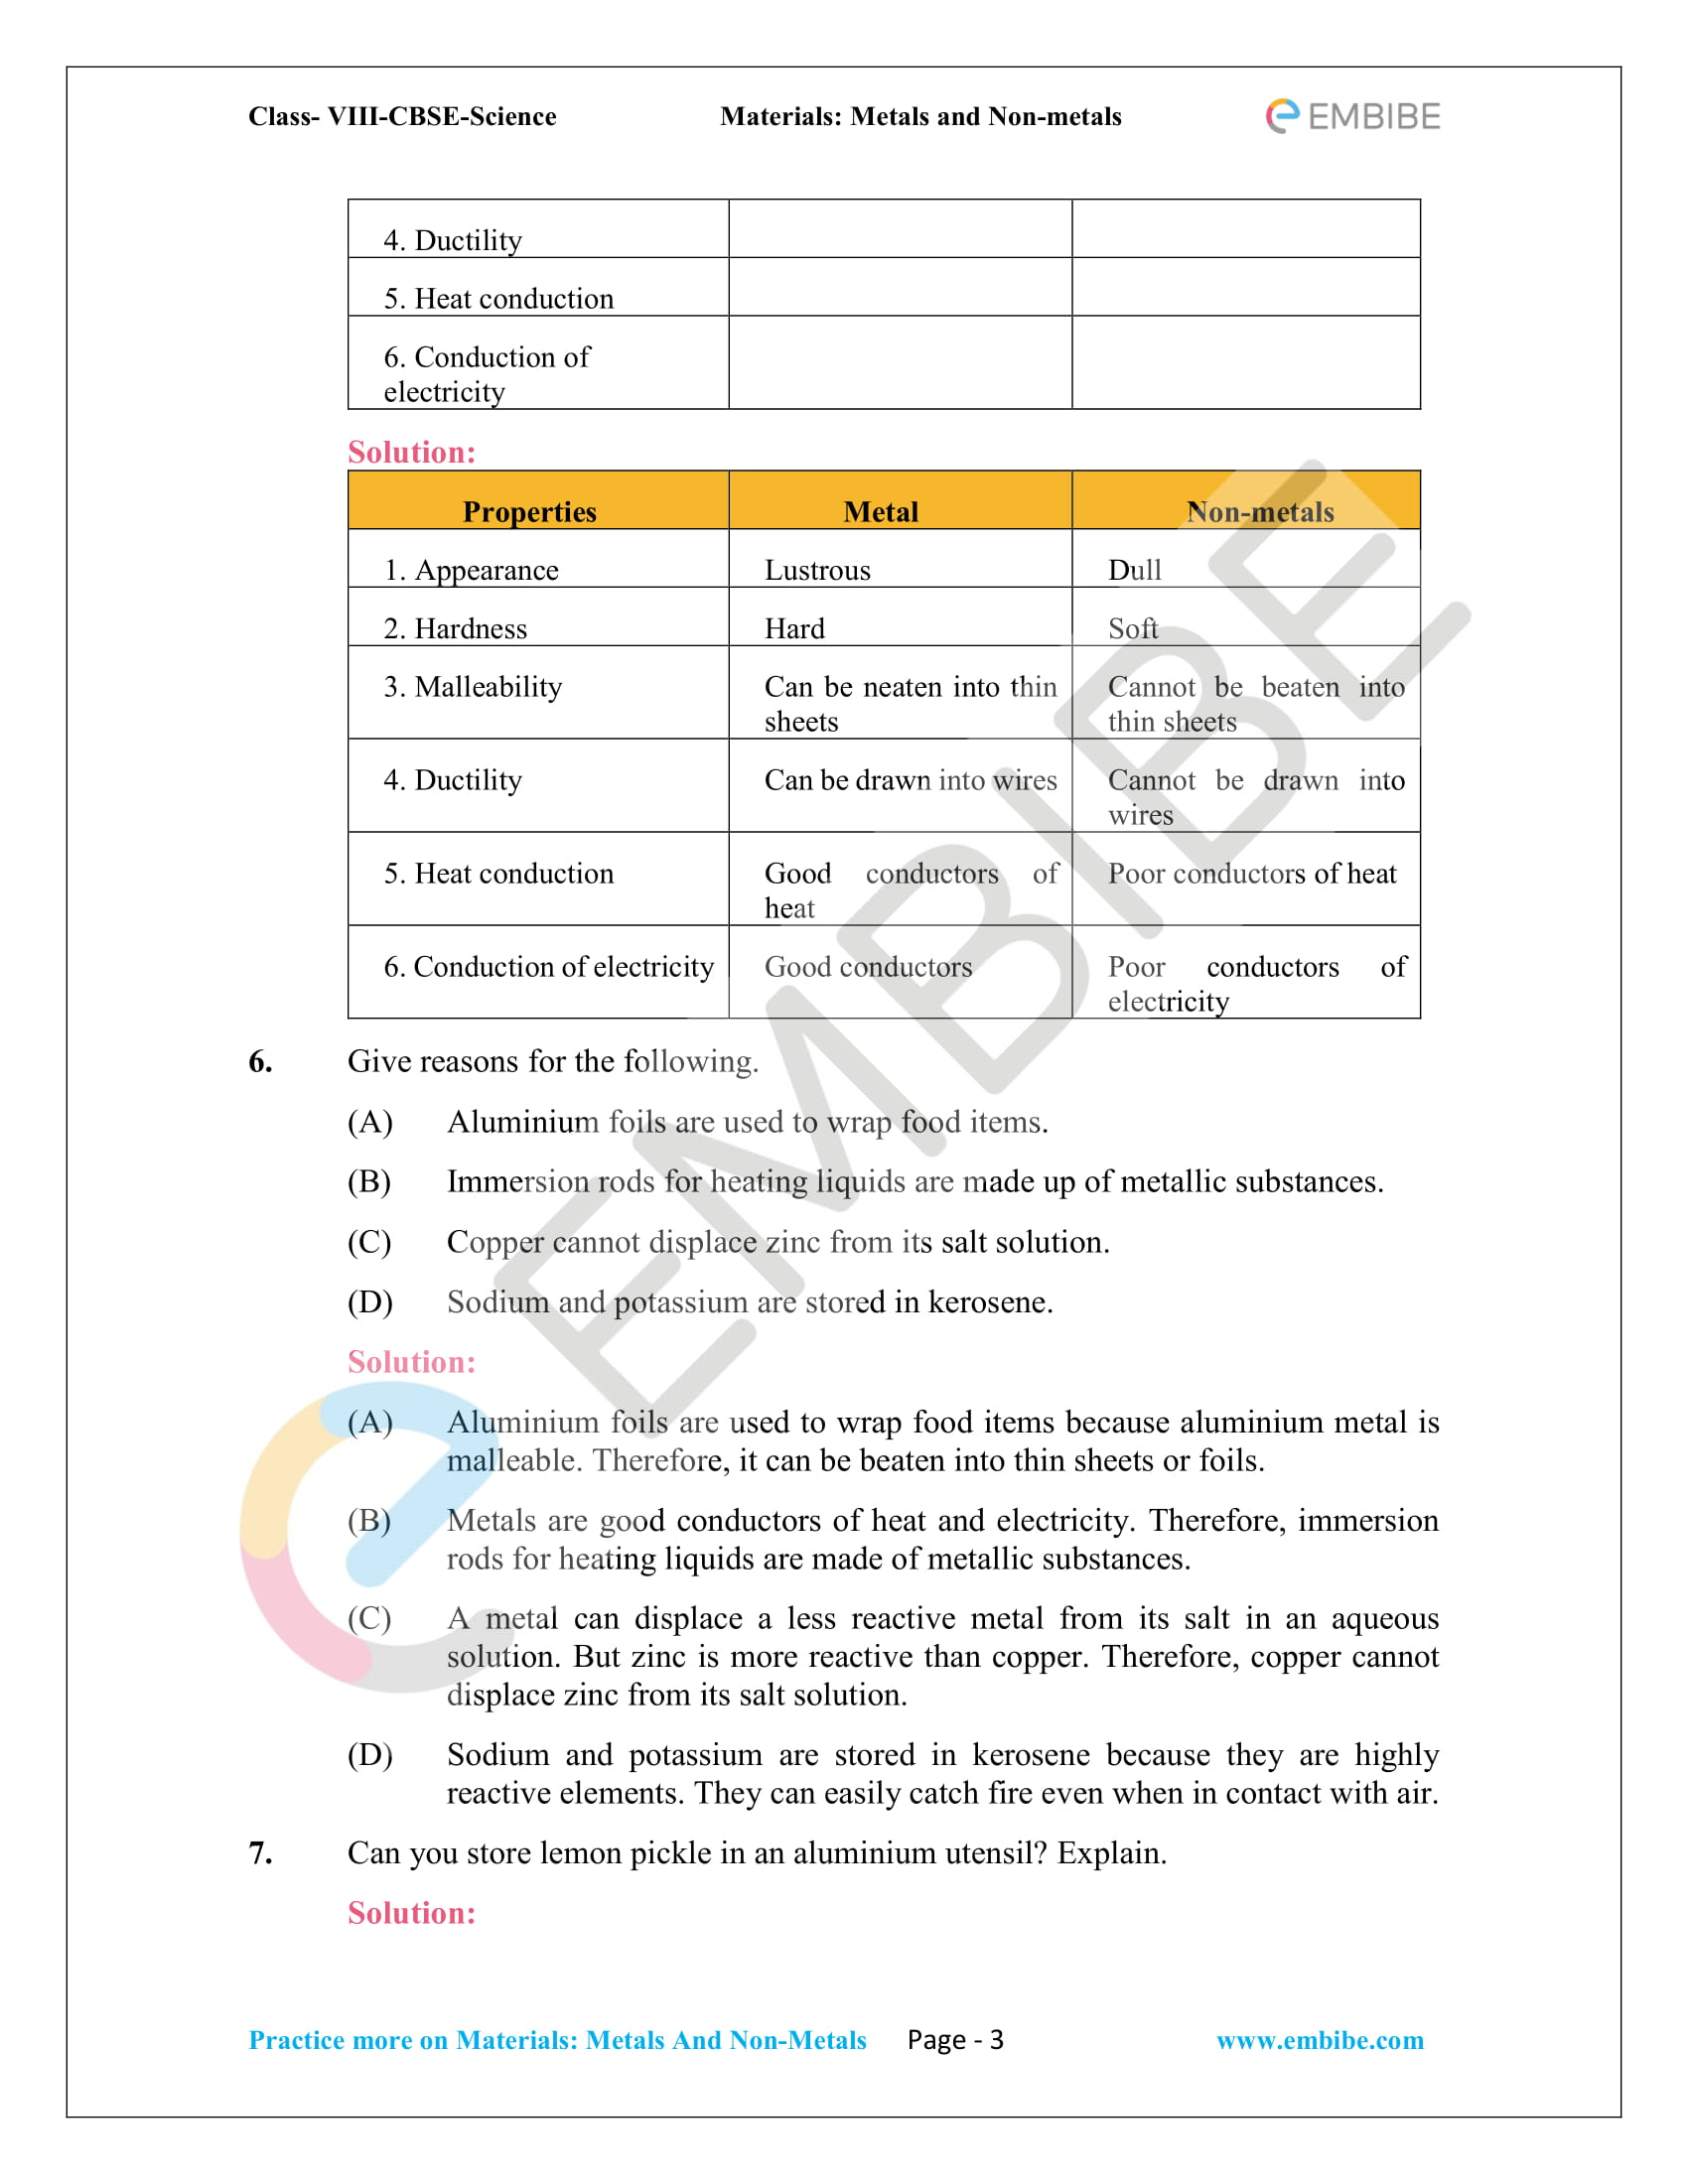 NCERT Solutions For Class 8 Science Chapter 4 PDF: Materials